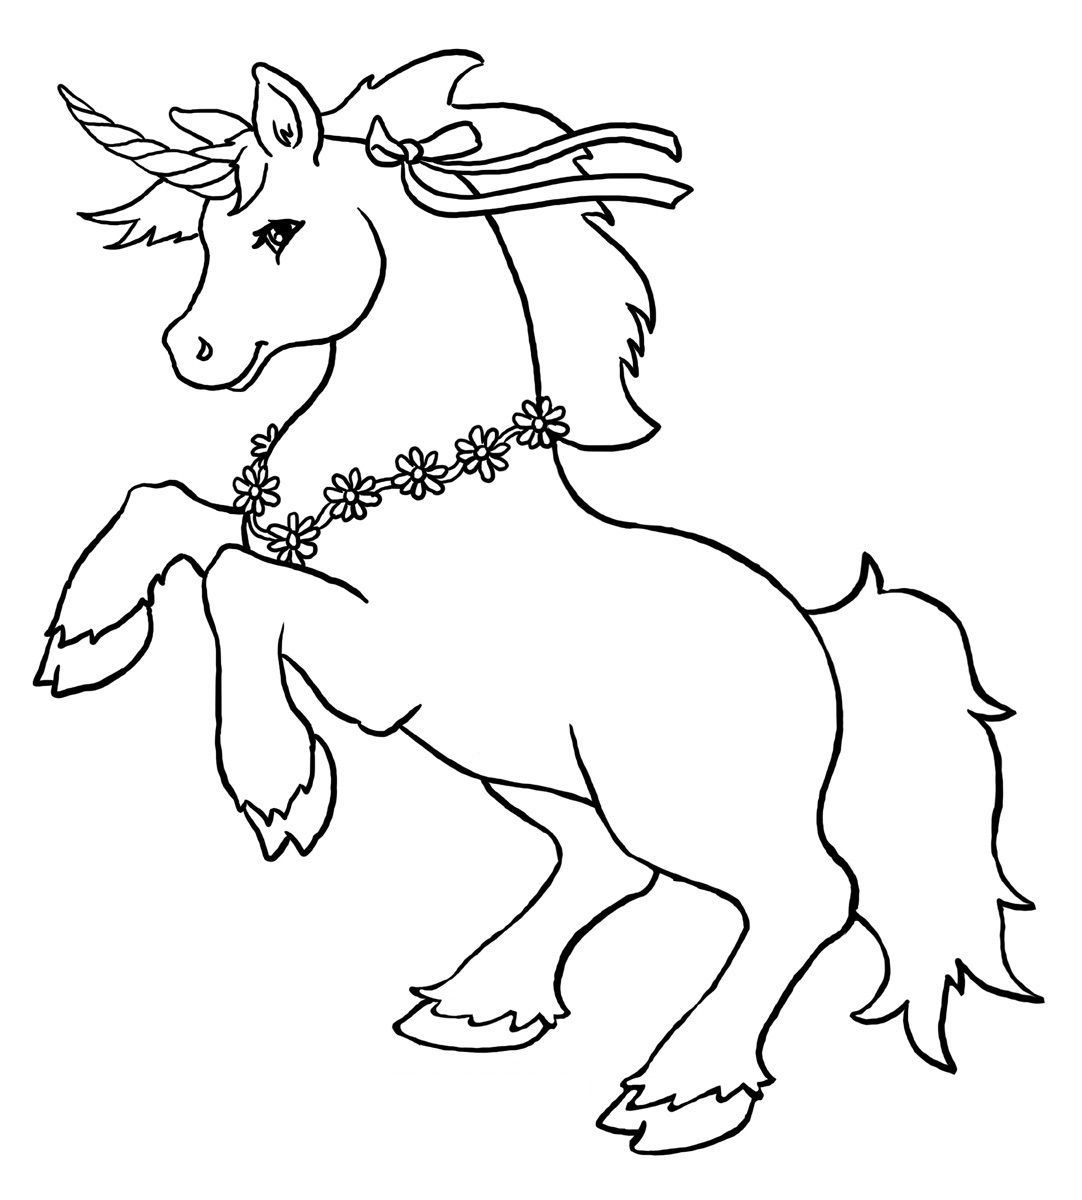 free coloring kids unicorn # 8